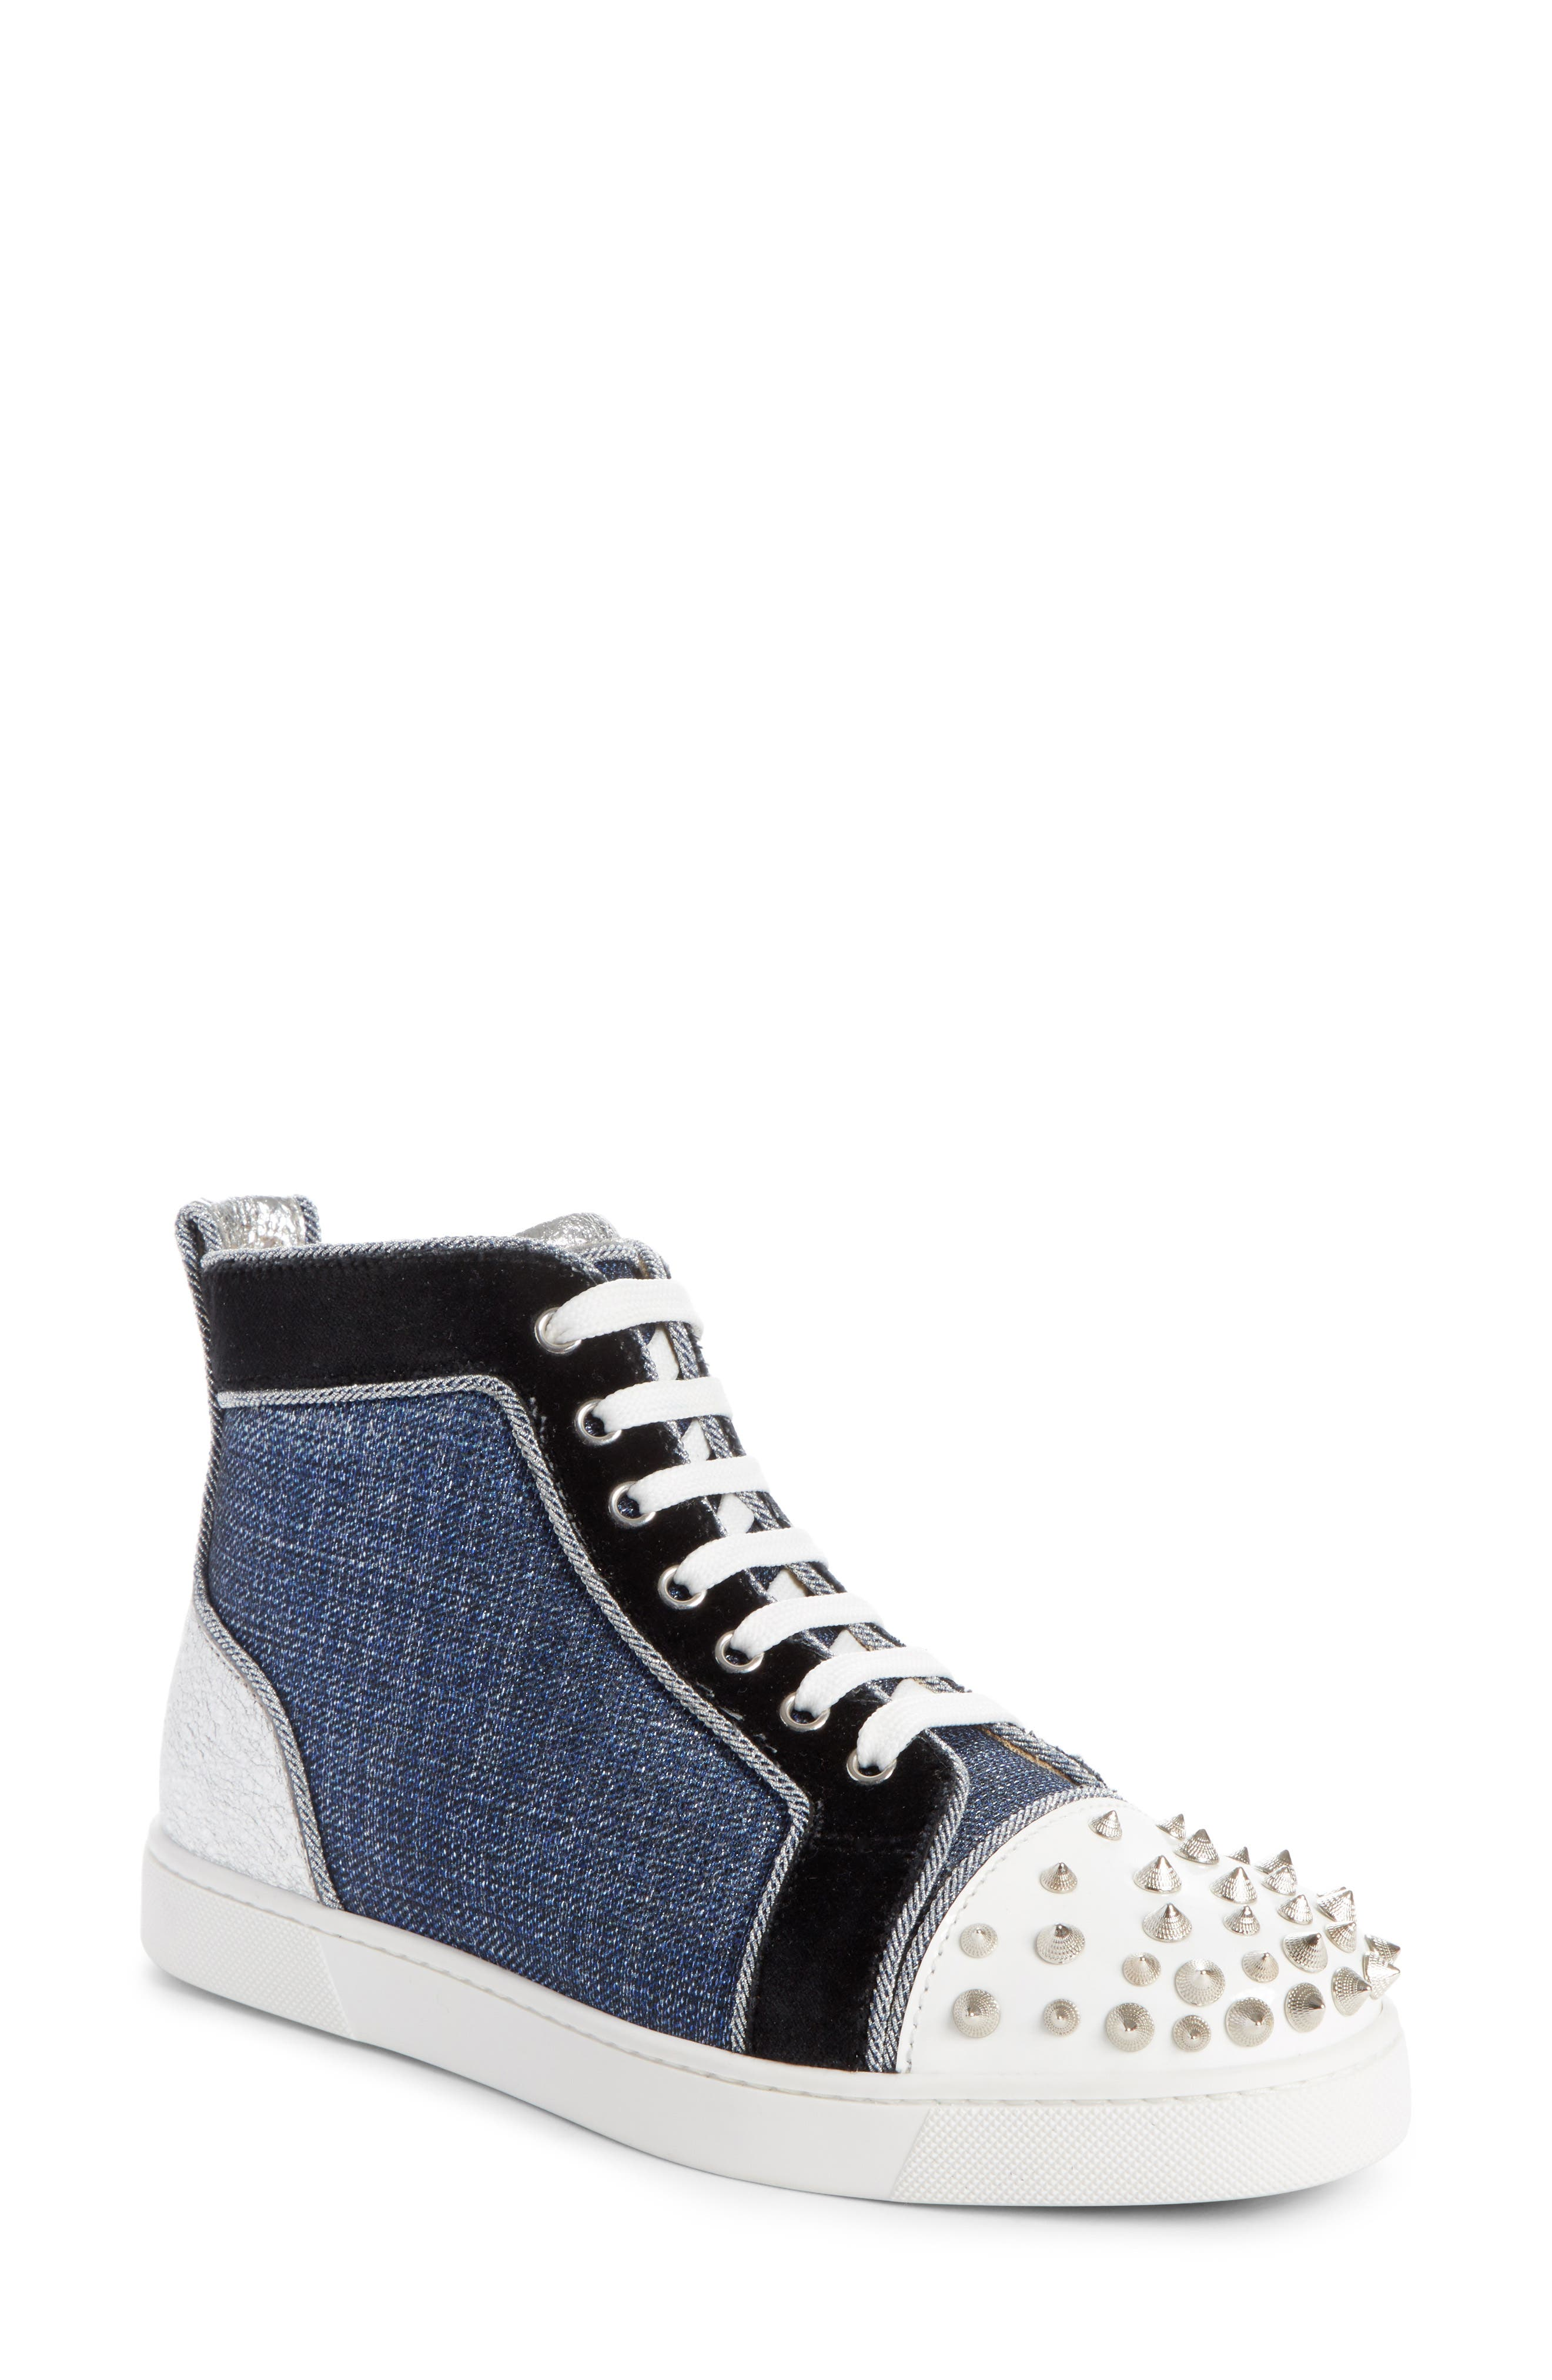 Lou Degra Spiked High Top Sneaker,                         Main,                         color, Denim/ Silver